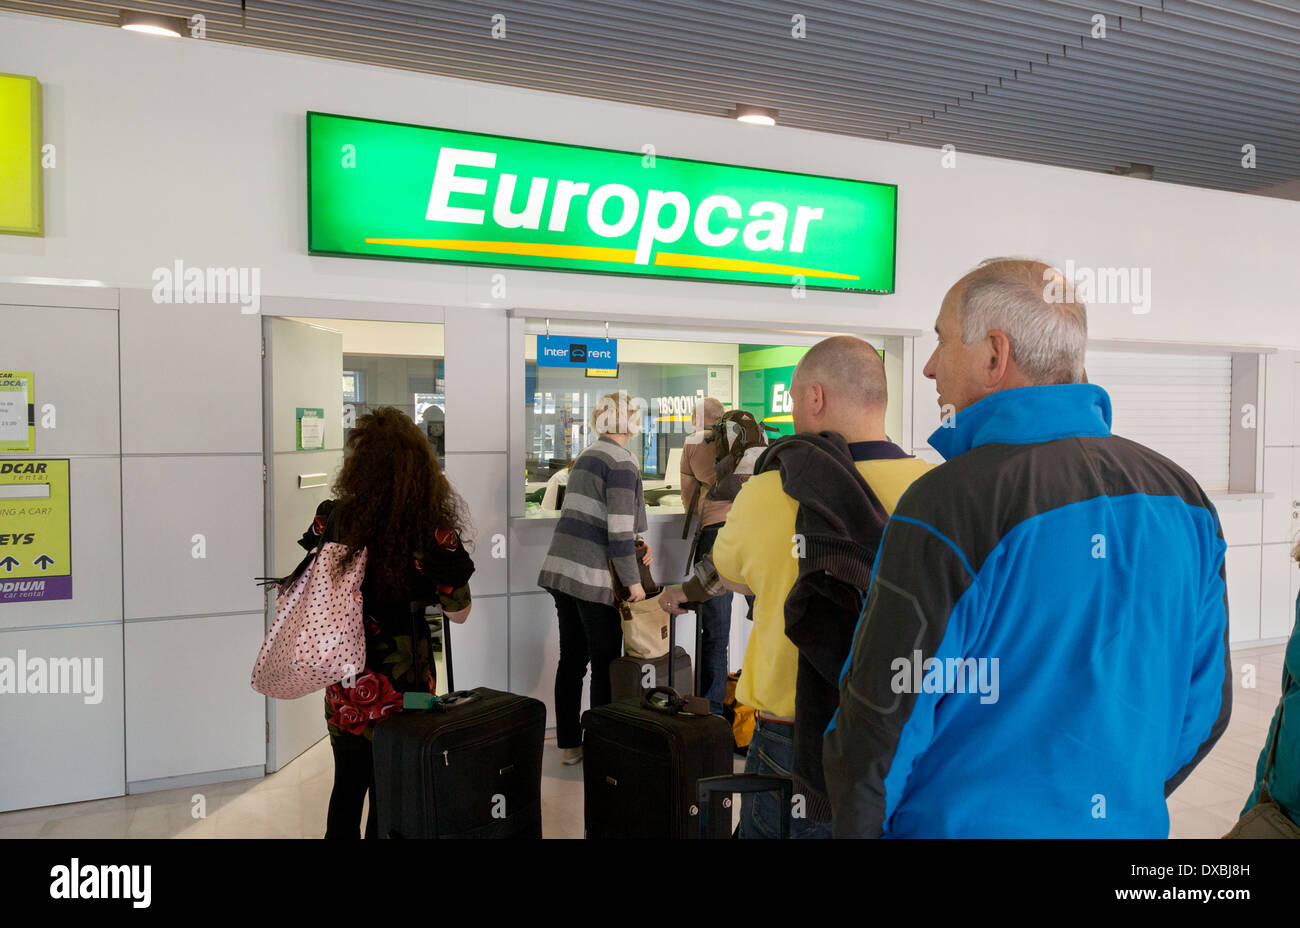 People car rental desk in im genes de stock people car for Oficinas europcar madrid